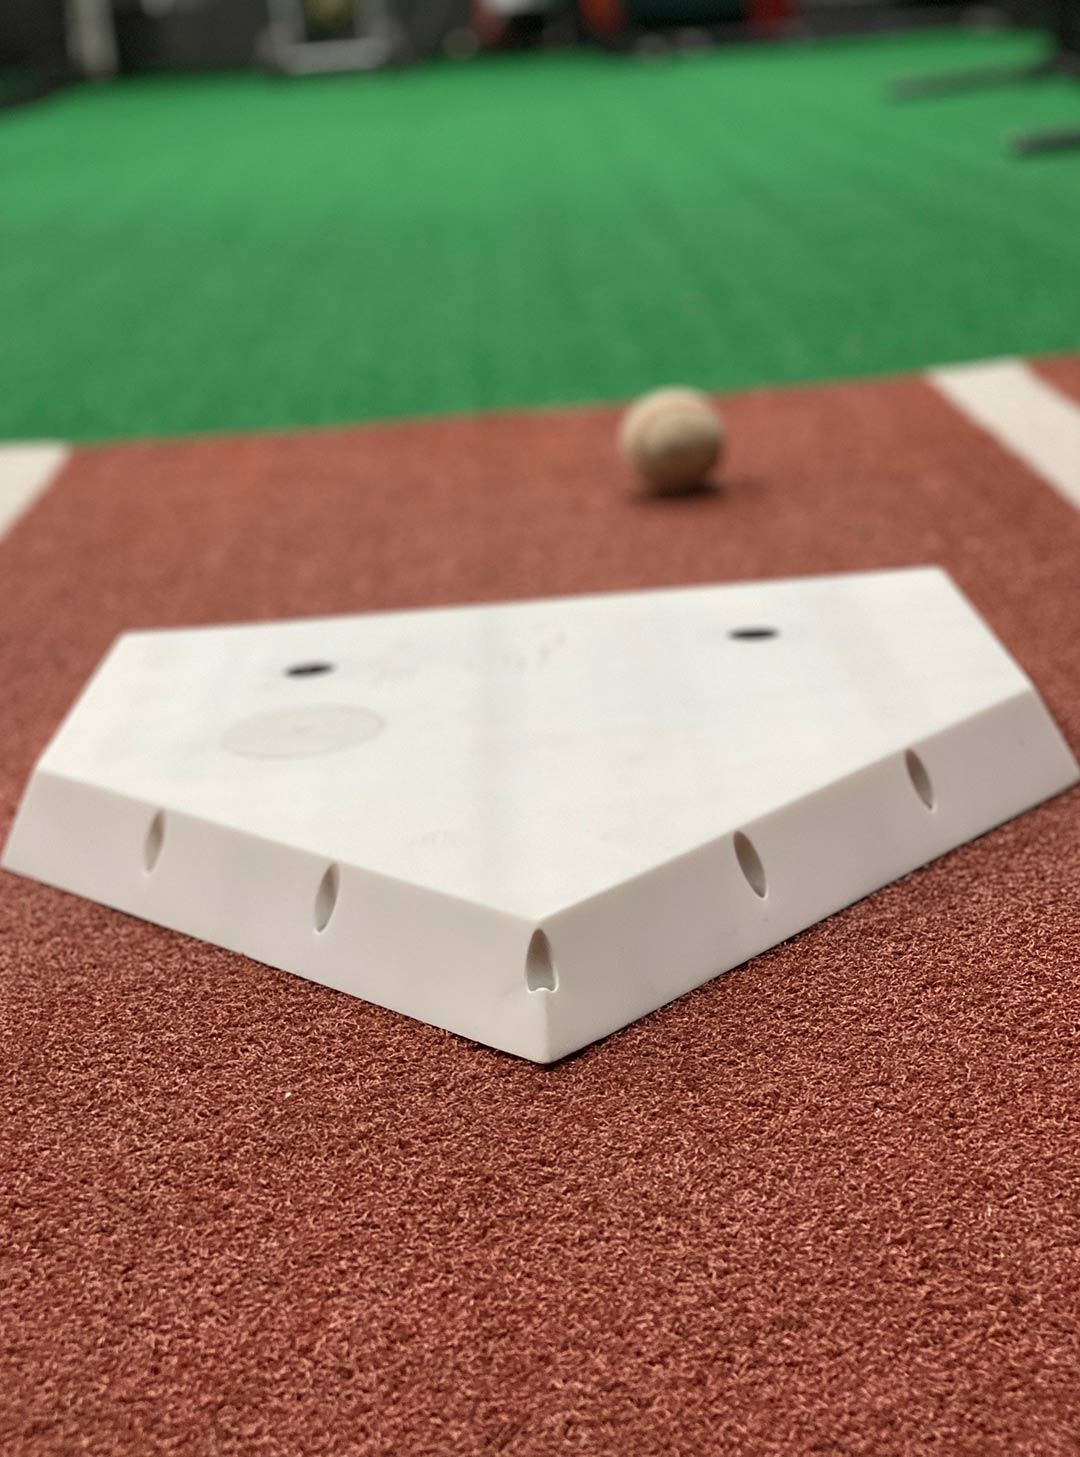 The camera from Plate Vision, the electronic home plate (below) developed by UMD researchers John R. Rzasa and Christopher C. Davis and CEO Todd Levitt, captures a bat striking a ball for a hit. (GIF and photo courtesy of John R. Rzasa and Todd Levitt)